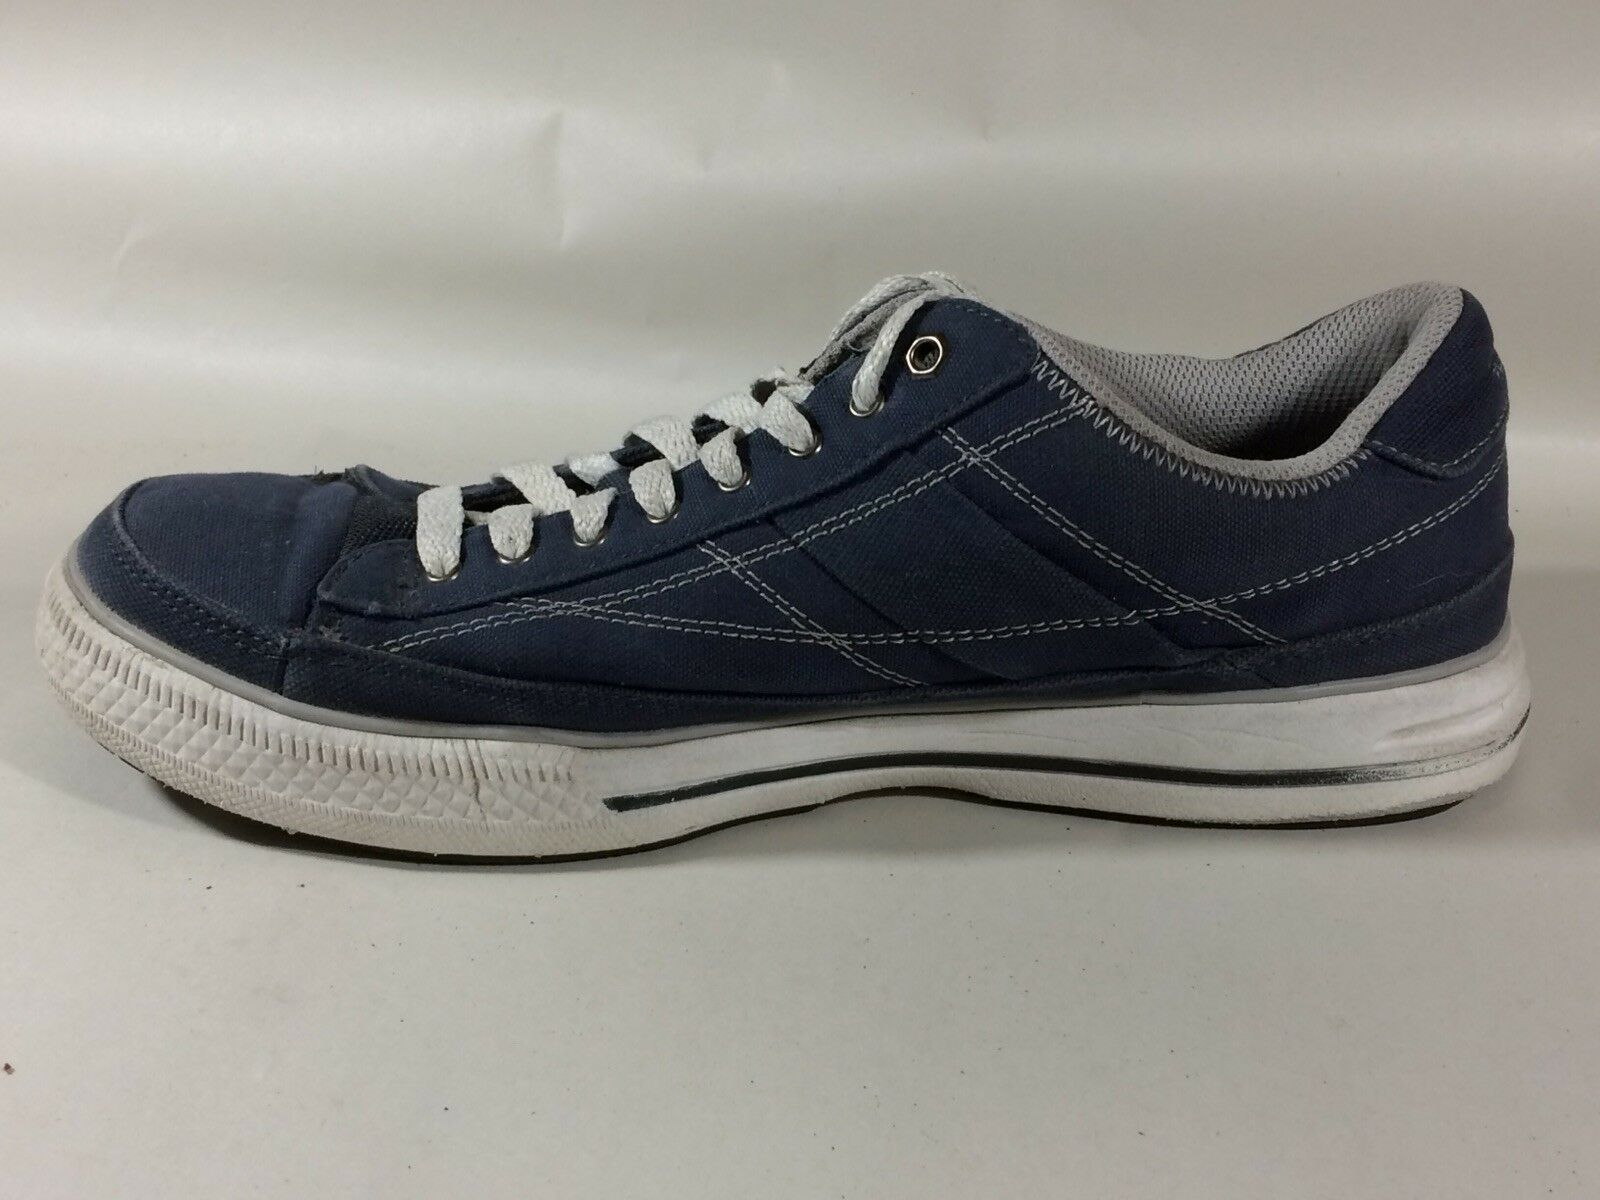 Skechers Sport Arcade Chat  Uomo 10.5 51033 M Blau Fashion Sneakers 51033 10.5 Schuhes Canvas 999ae6